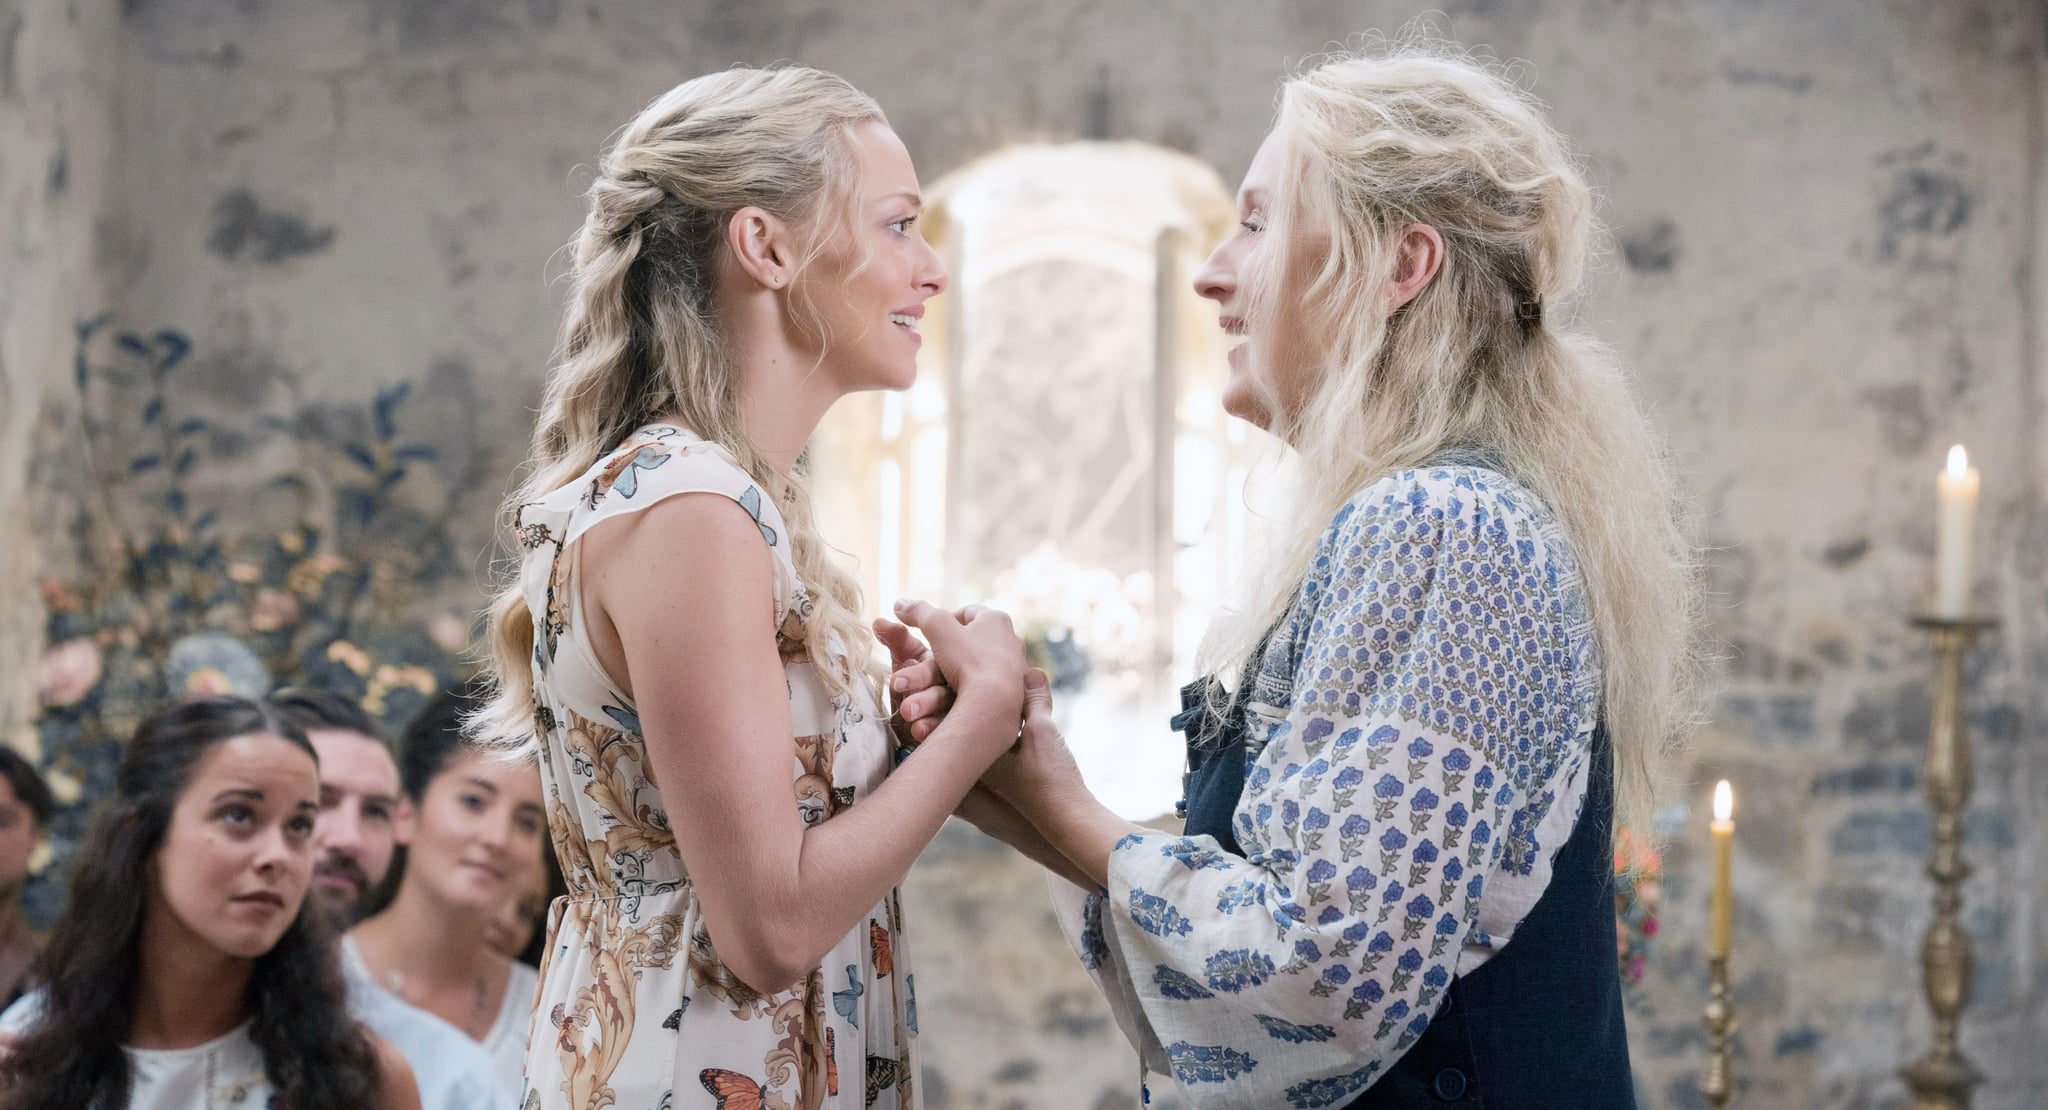 MAMMA MIA! HERE WE GO AGAIN, from left: Amanda Seyfried, Meryl Streep, 2018. ph: Jonathan Prime / Universal Studios /Courtesy Everett Collection